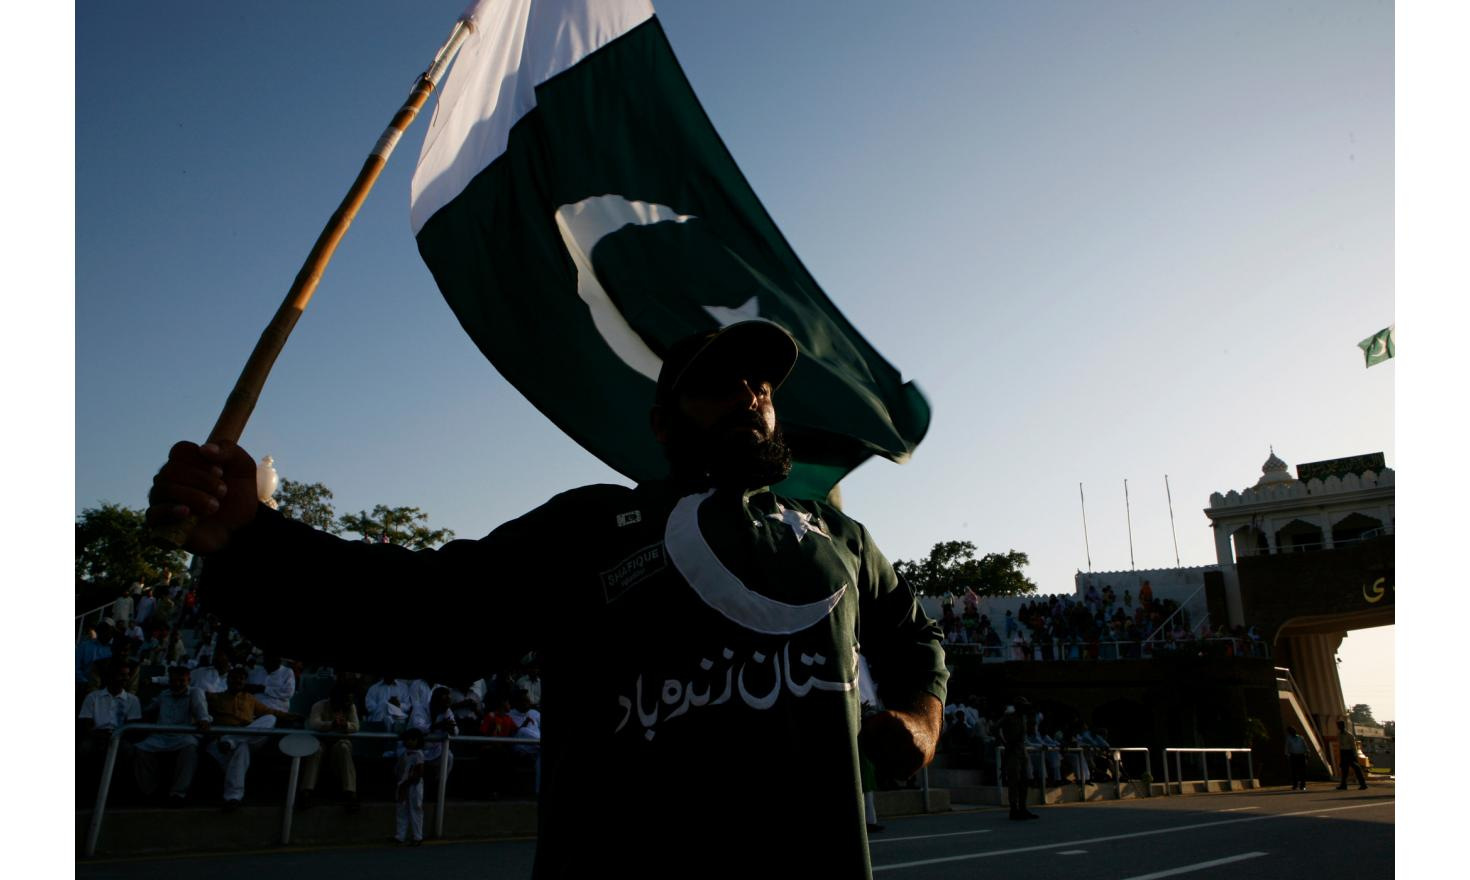 Wahai border, the border with Pakistan the Pakistani side. Each evening unfolds a kind of spectacle between Pakistani and Indian border guards. It is a strange mix between casual and cynical nationalist demonstration.